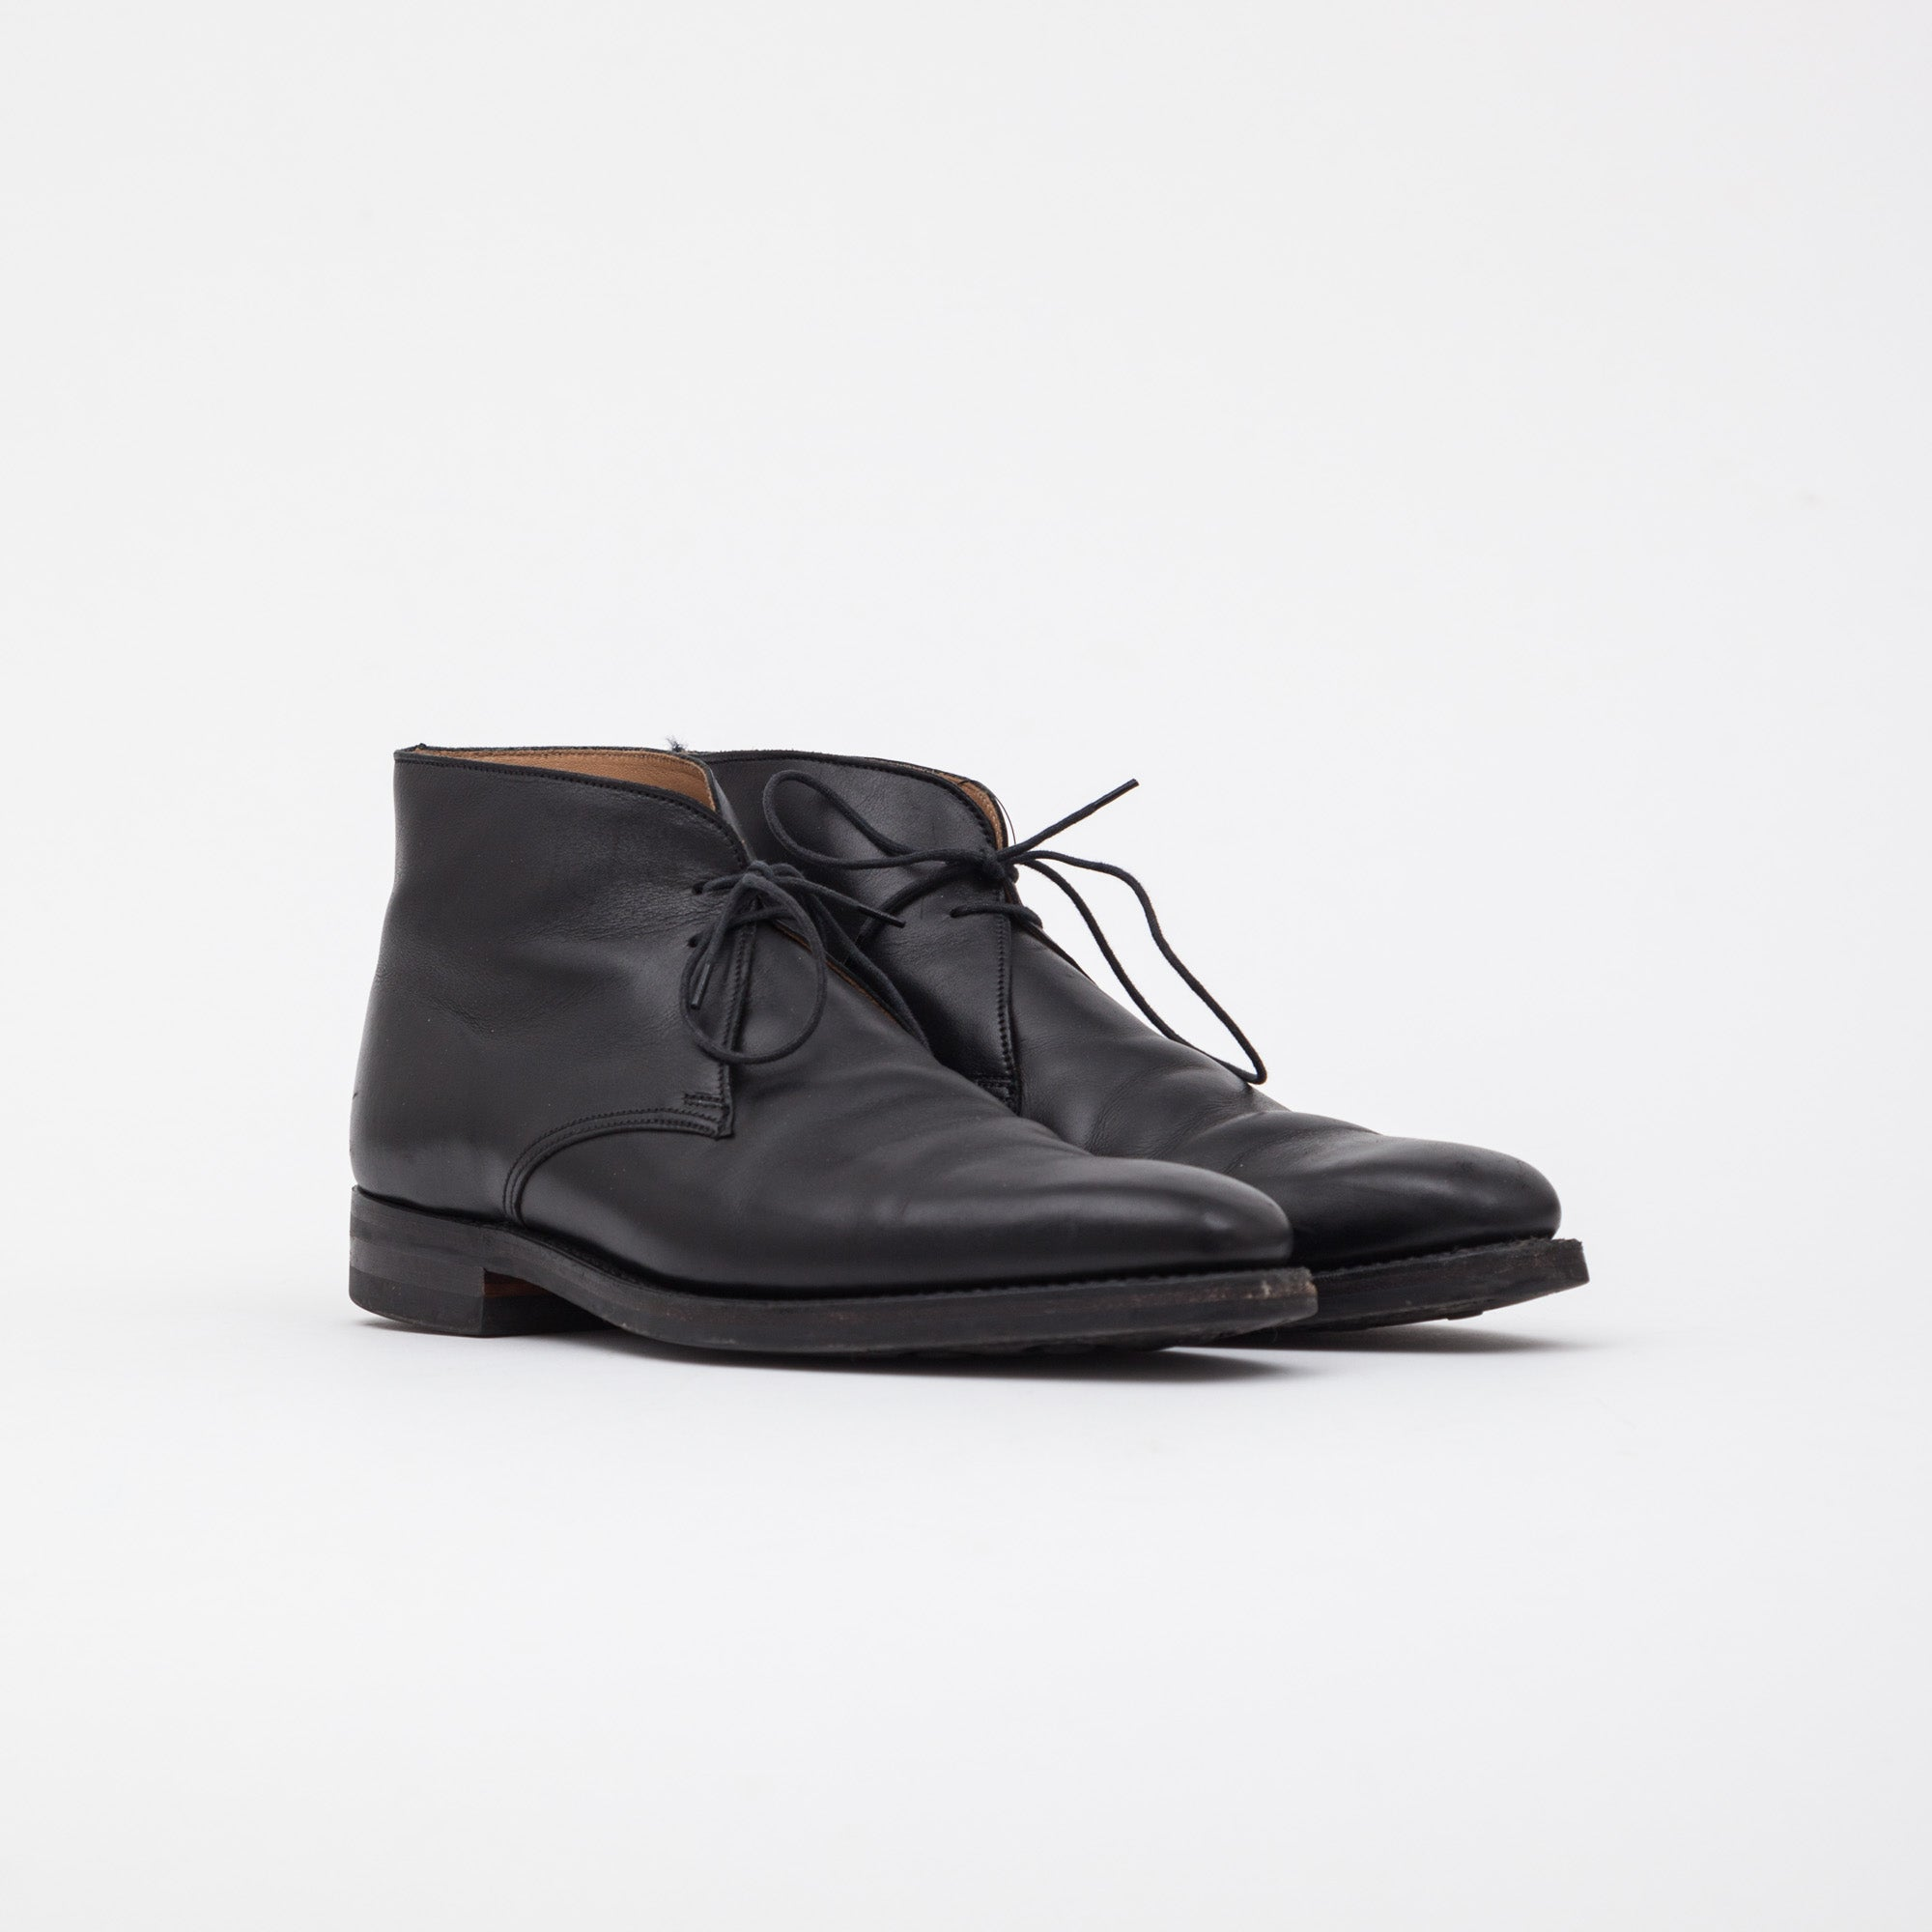 Tetbury Leather Boots